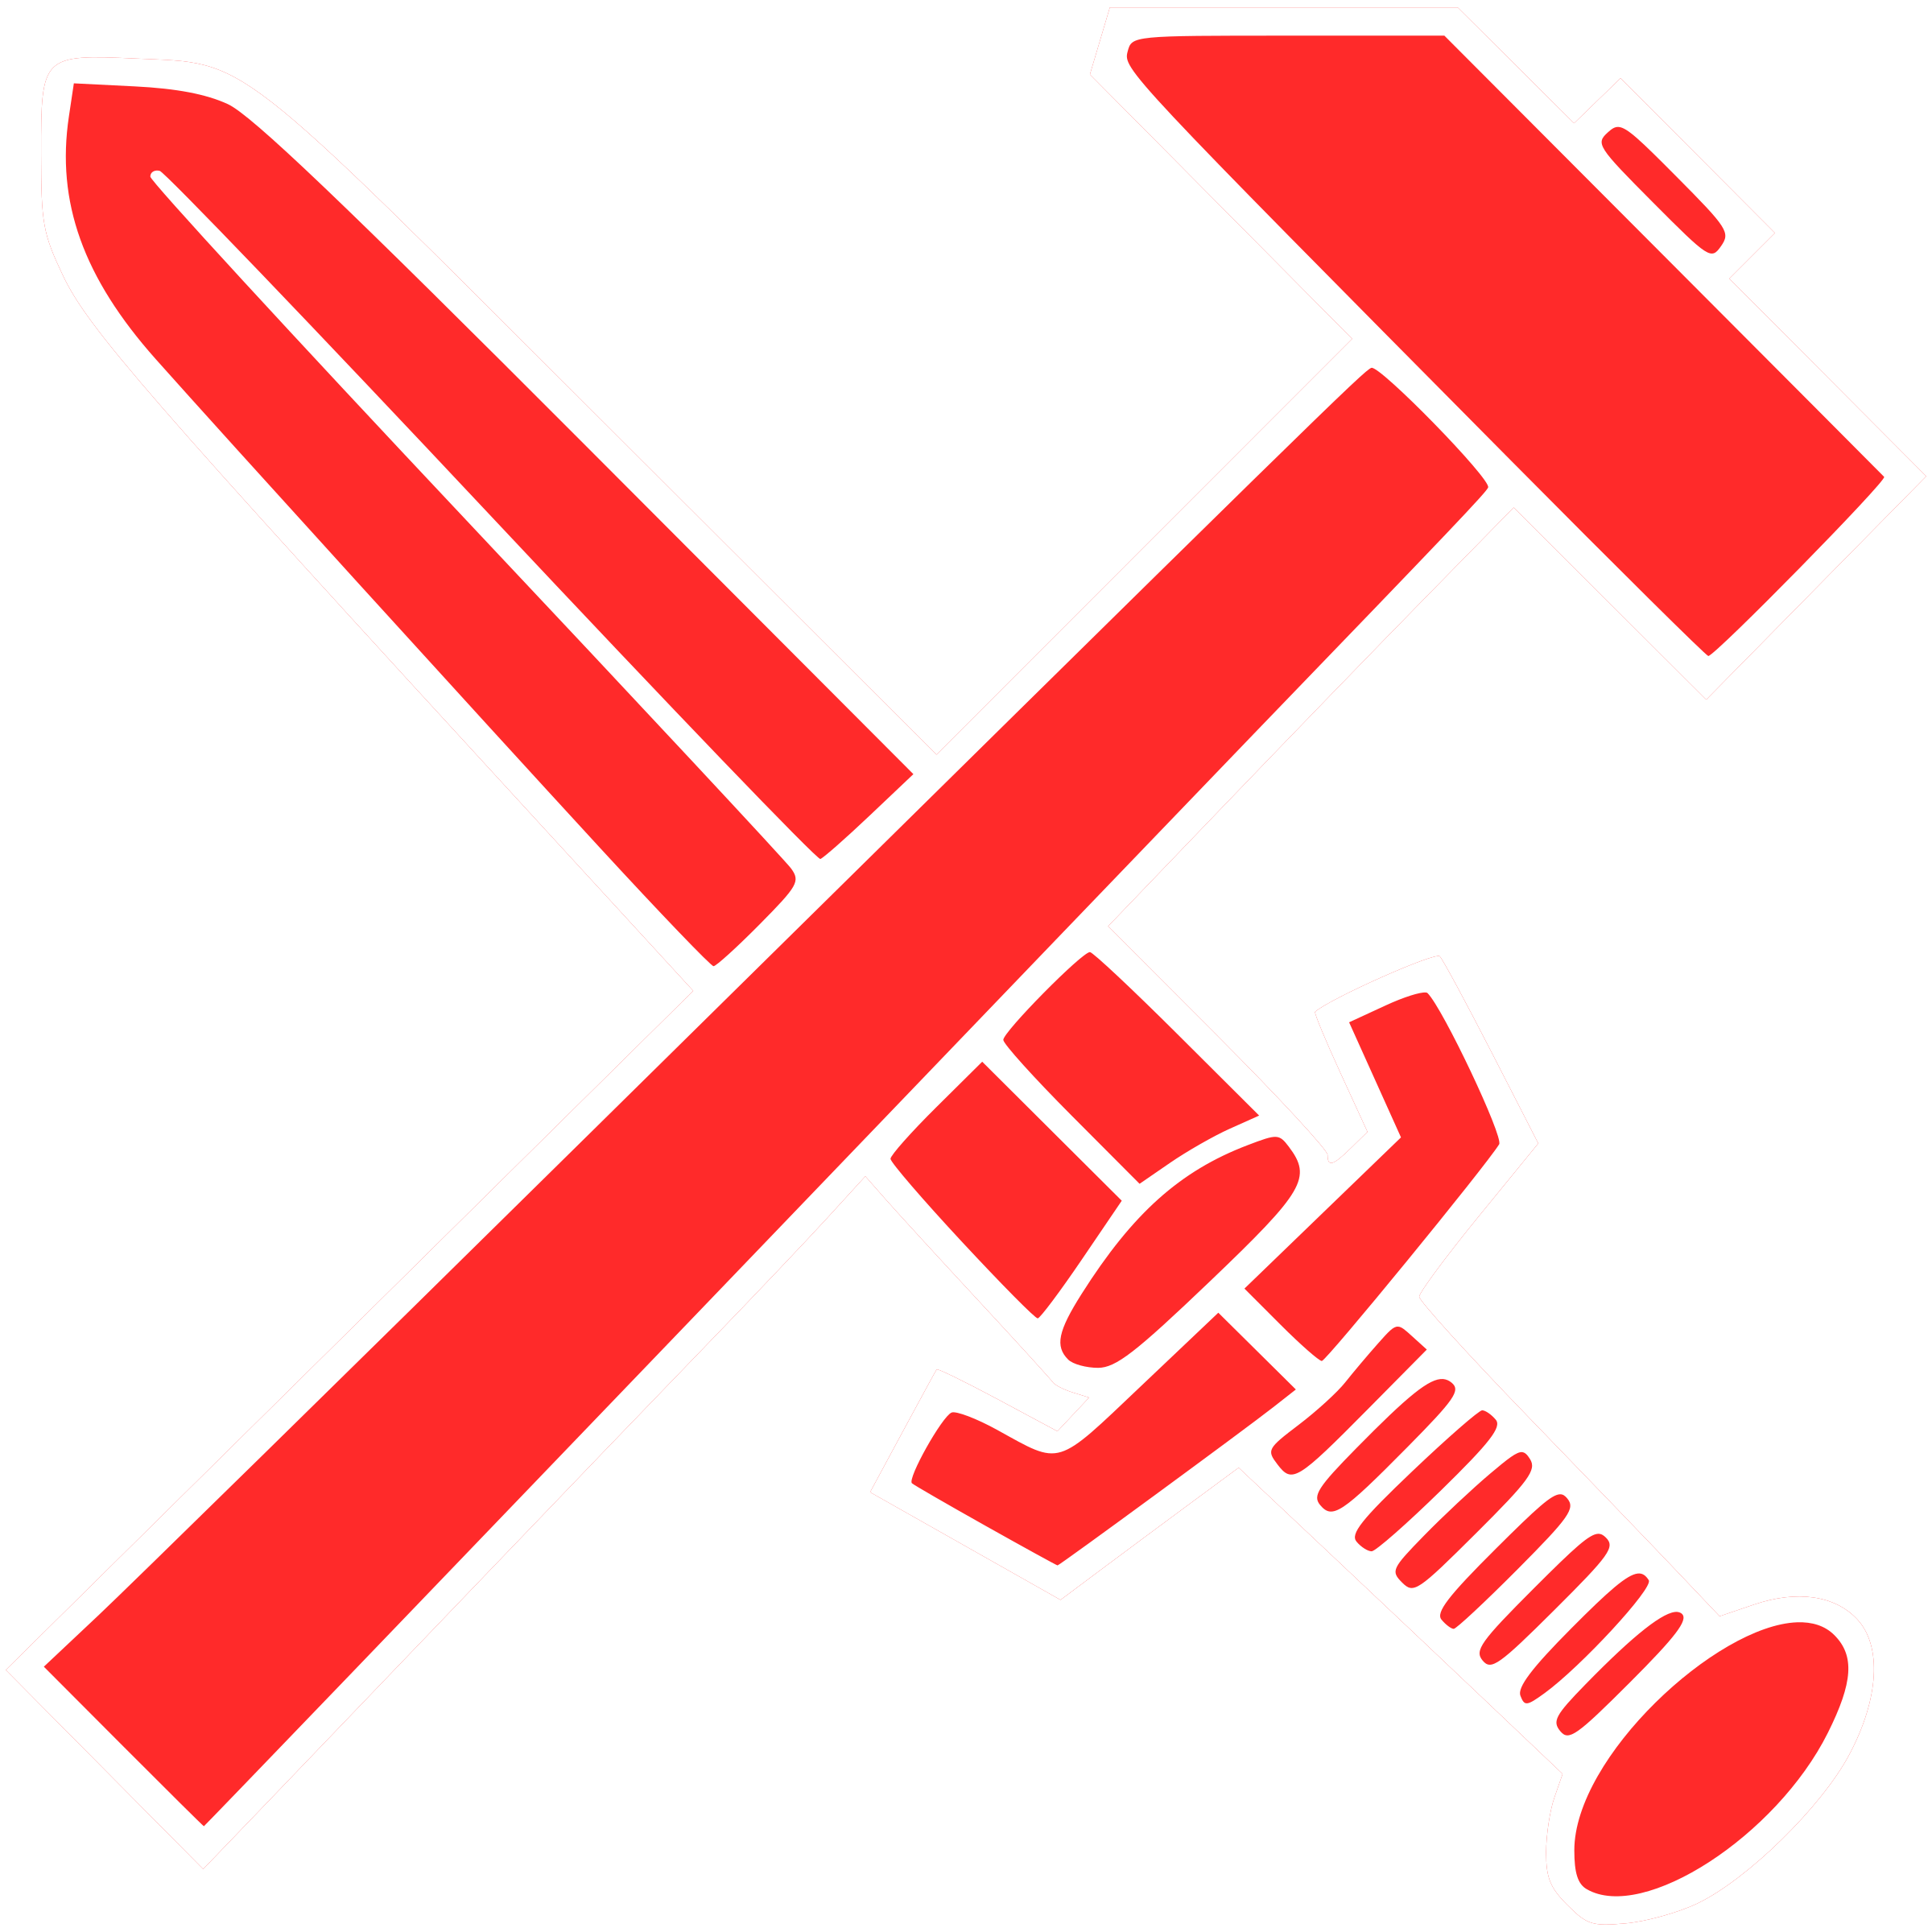 And sword icons png. Clipart hammer crossed